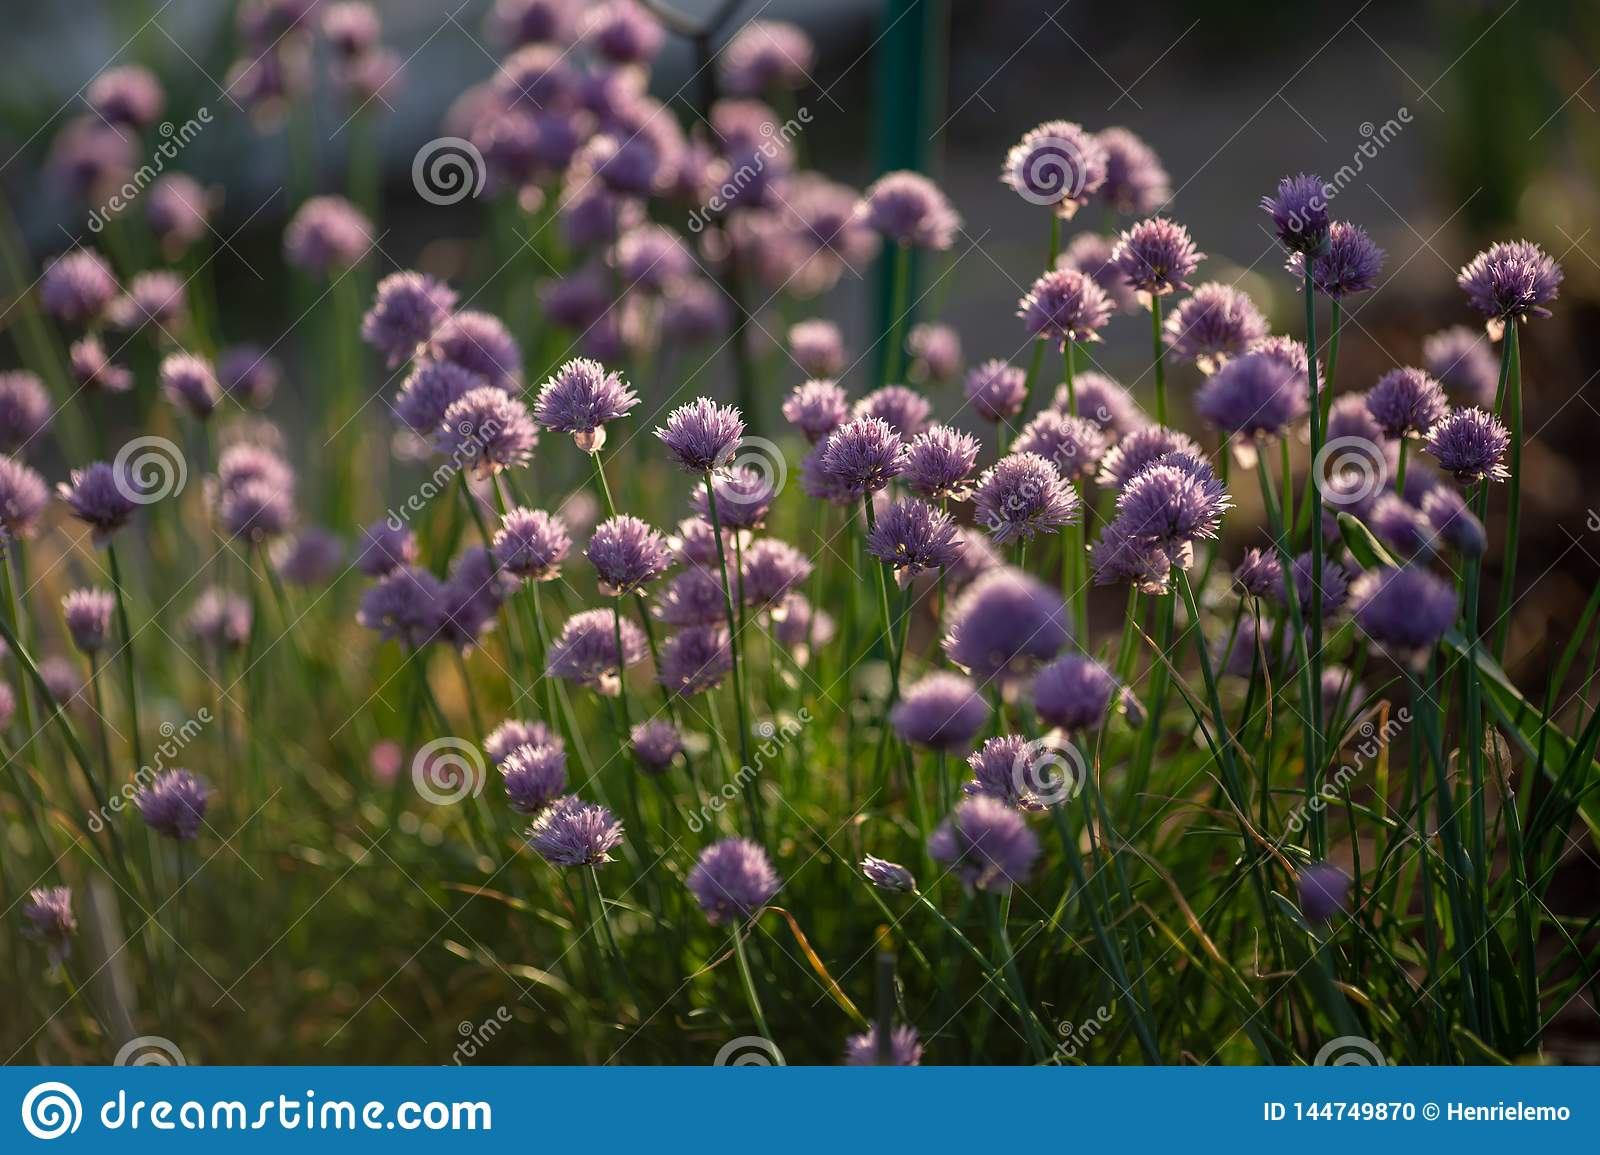 Chives with flowers captured in nature towards sunset with contrast and small shallow of depth